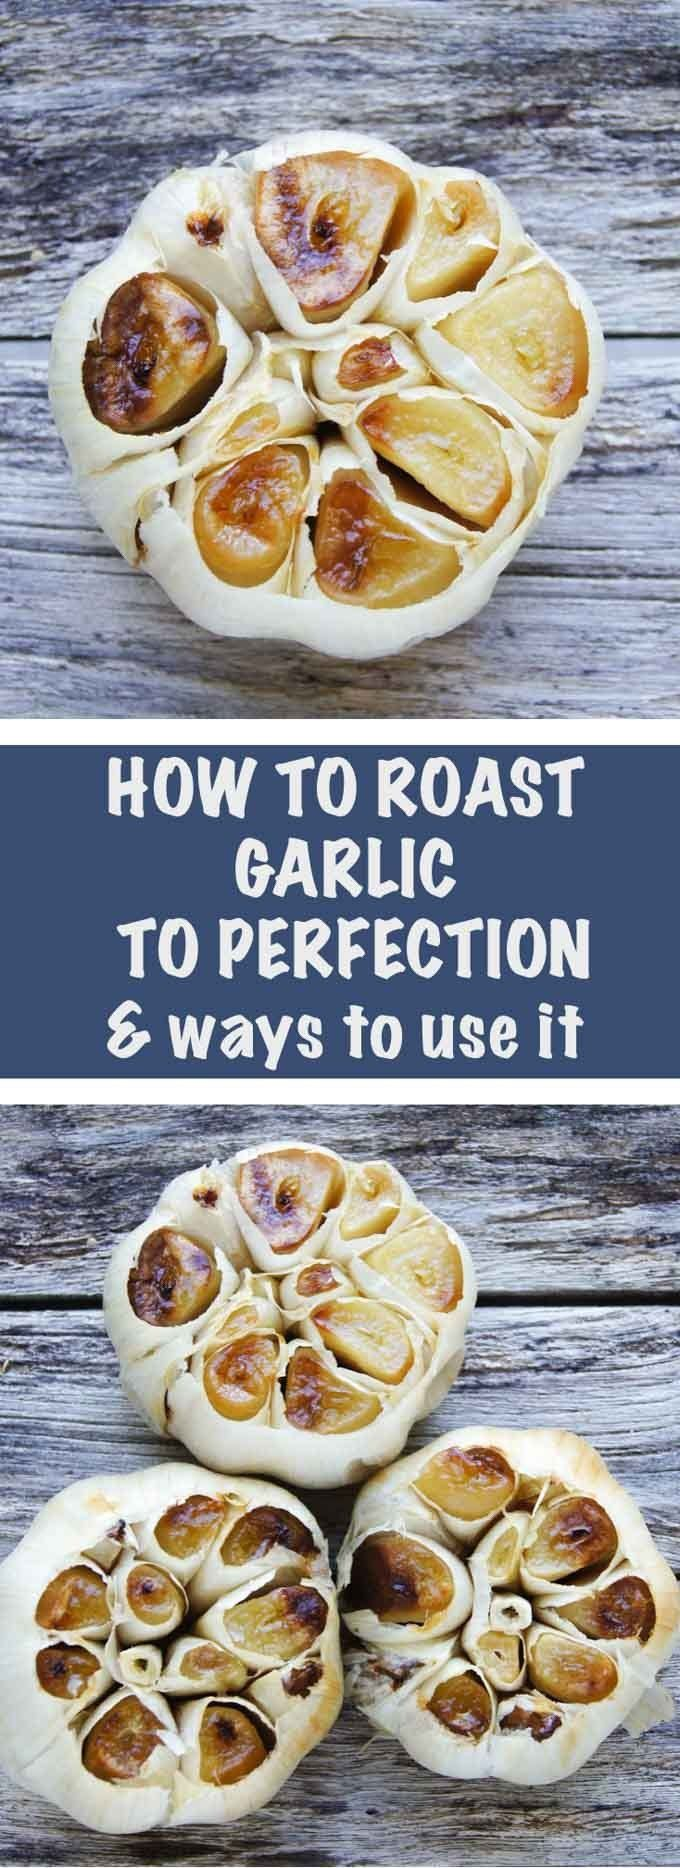 Soft, buttery with caramel notes Roasted Garlic on crispy toast is my kind of heaven. Perfect to flavor sauces, mashed potatoes or any meat.